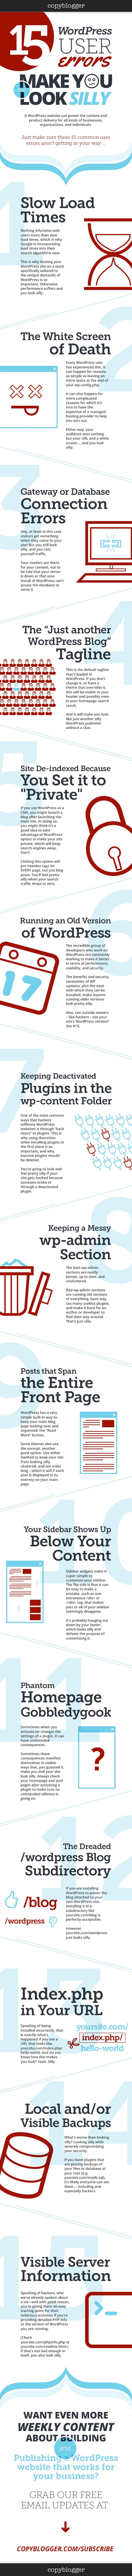 15 WordPress User Errors That   Make You Look Silly [Infographic]